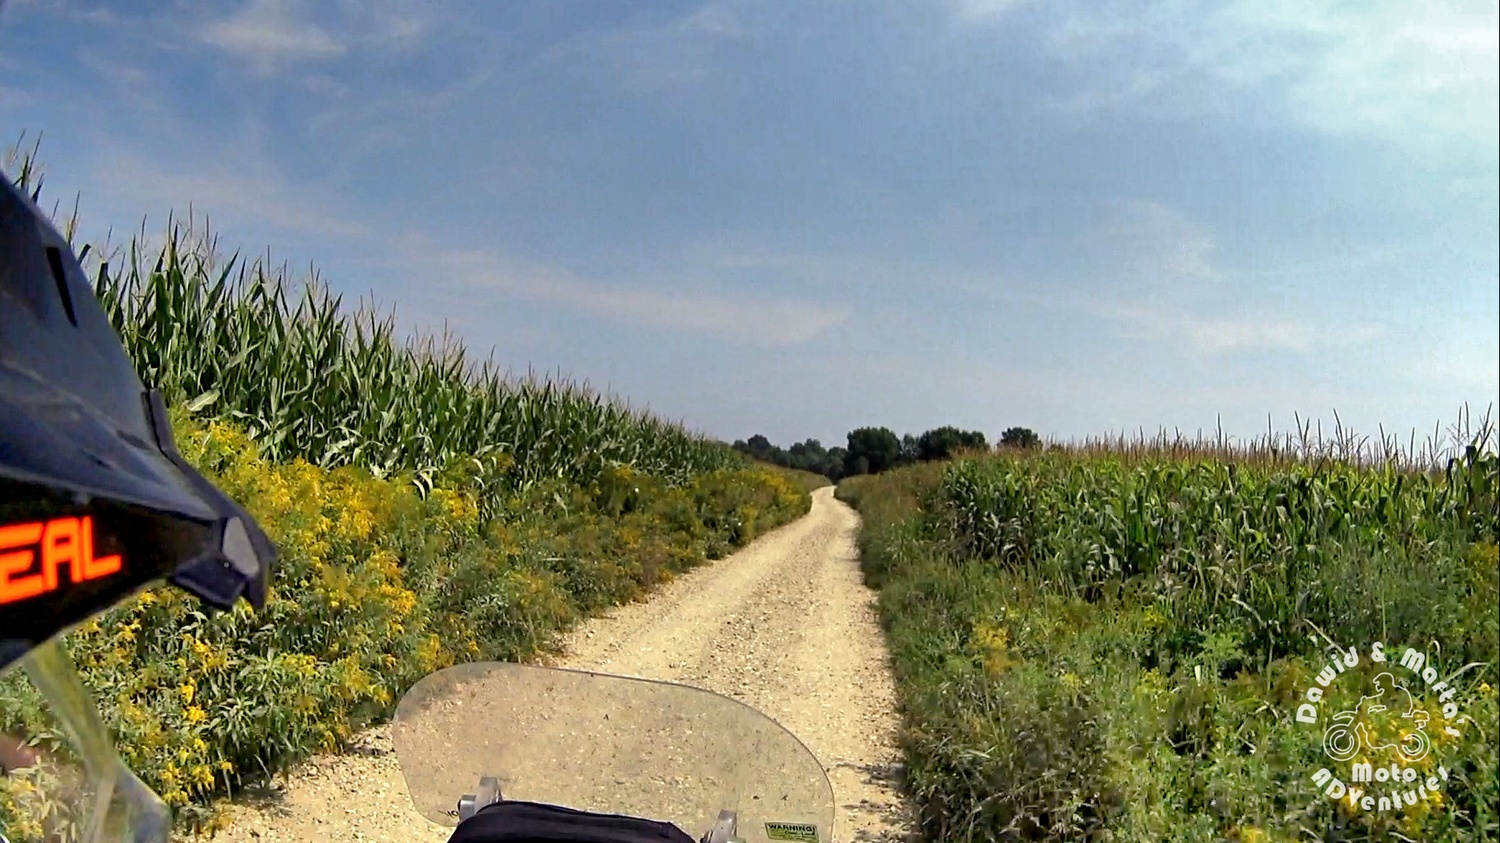 Leaving camping at the Drava River and riding offroad through the gravel road leading by the corn fields